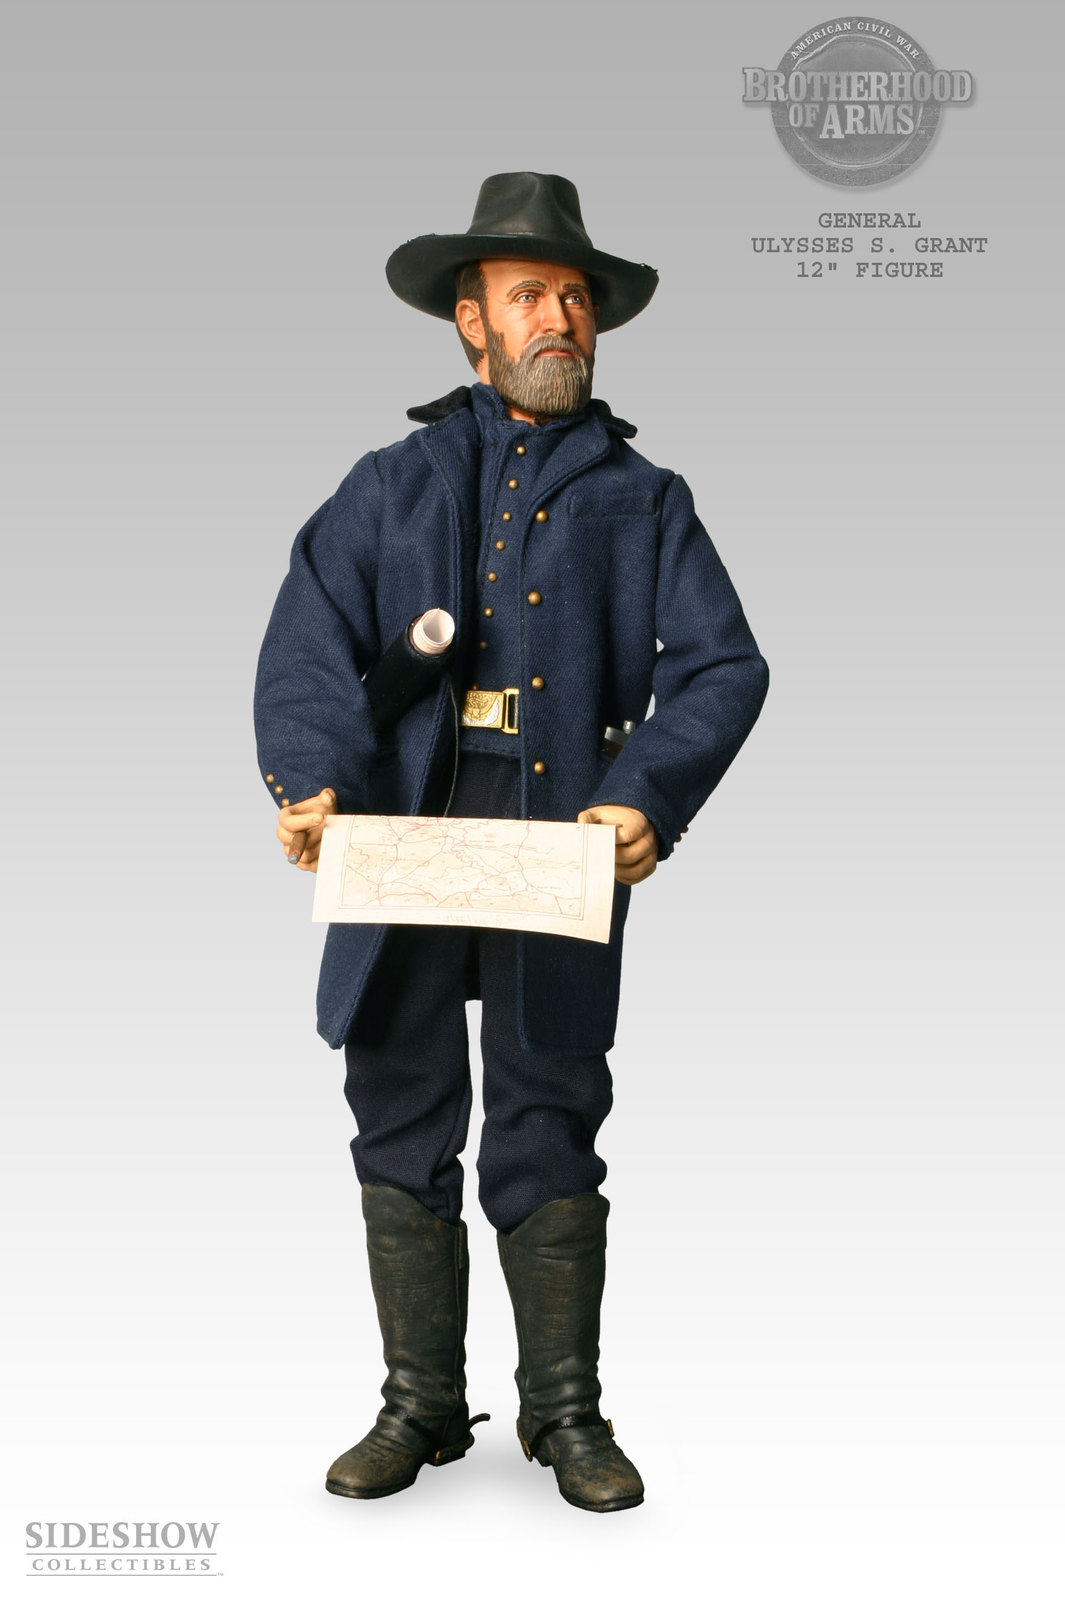 General Ulysses S. Grant Boxed Civil War Action Figure by Sideshow